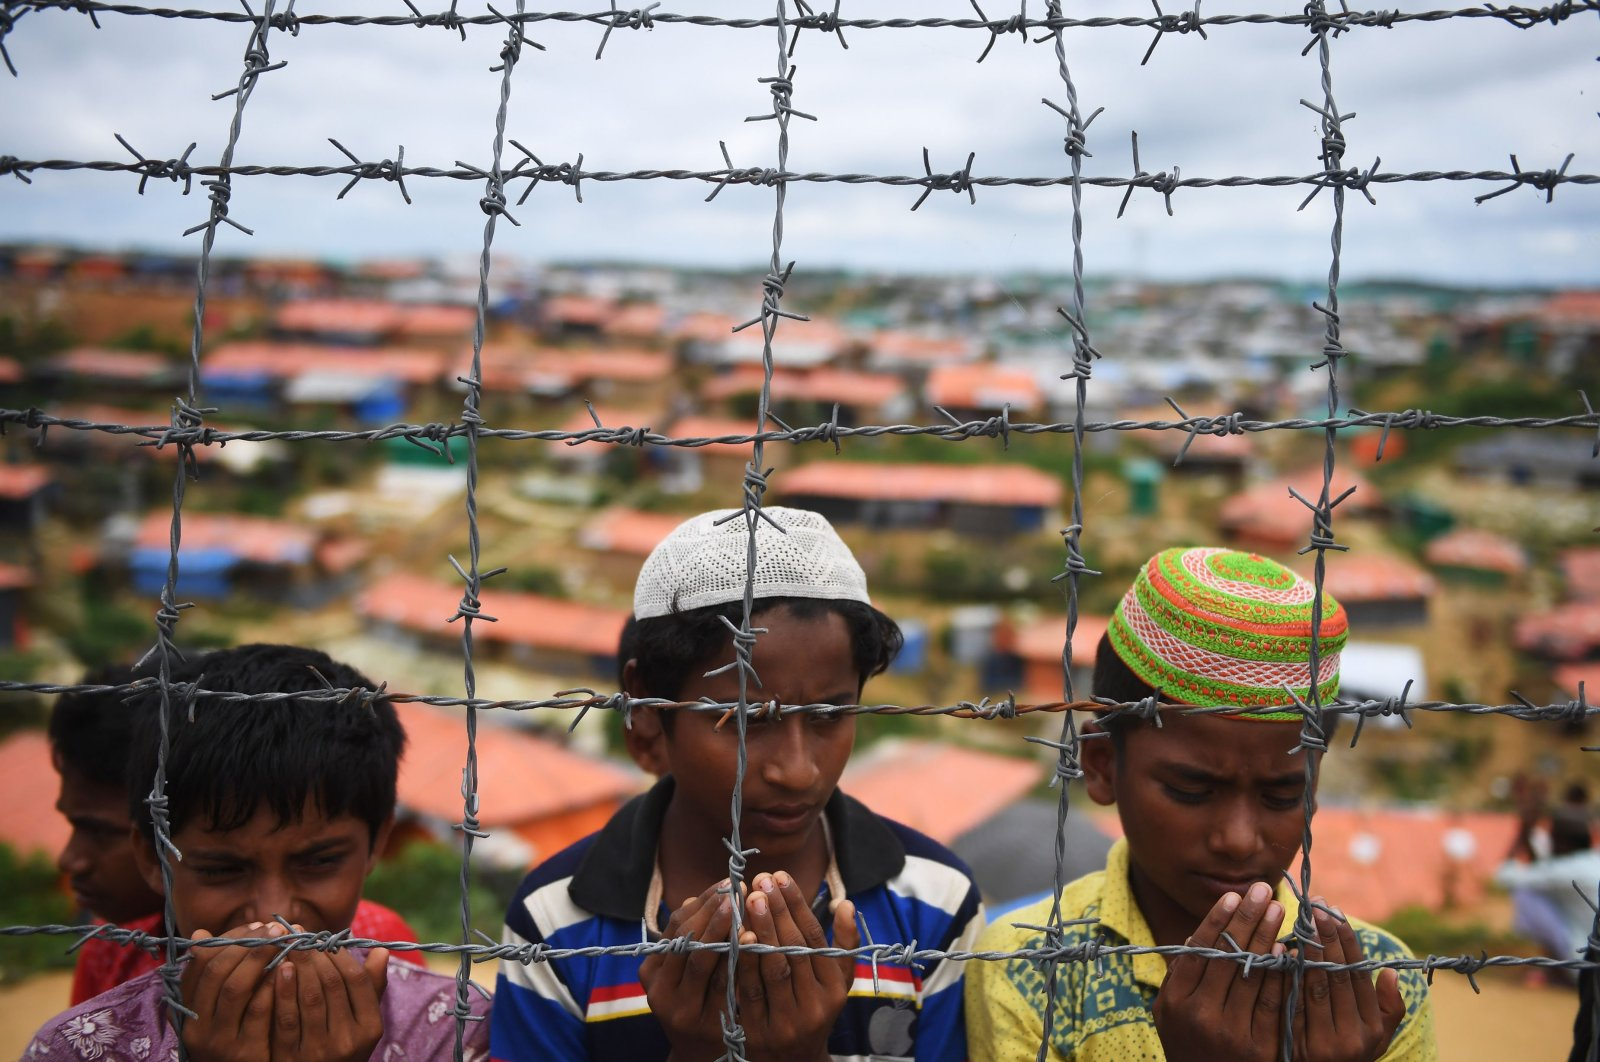 Rohingya refugees perform prayers as they attend a ceremony organized to remember the first anniversary of a military crackdown that prompted a massive exodus of people from Myanmar to Bangladesh, at the Kutupalong refugee camp in Ukhia, Cox's Bazar, Bangladesh, Aug. 25, 2018. (AFP Photo)